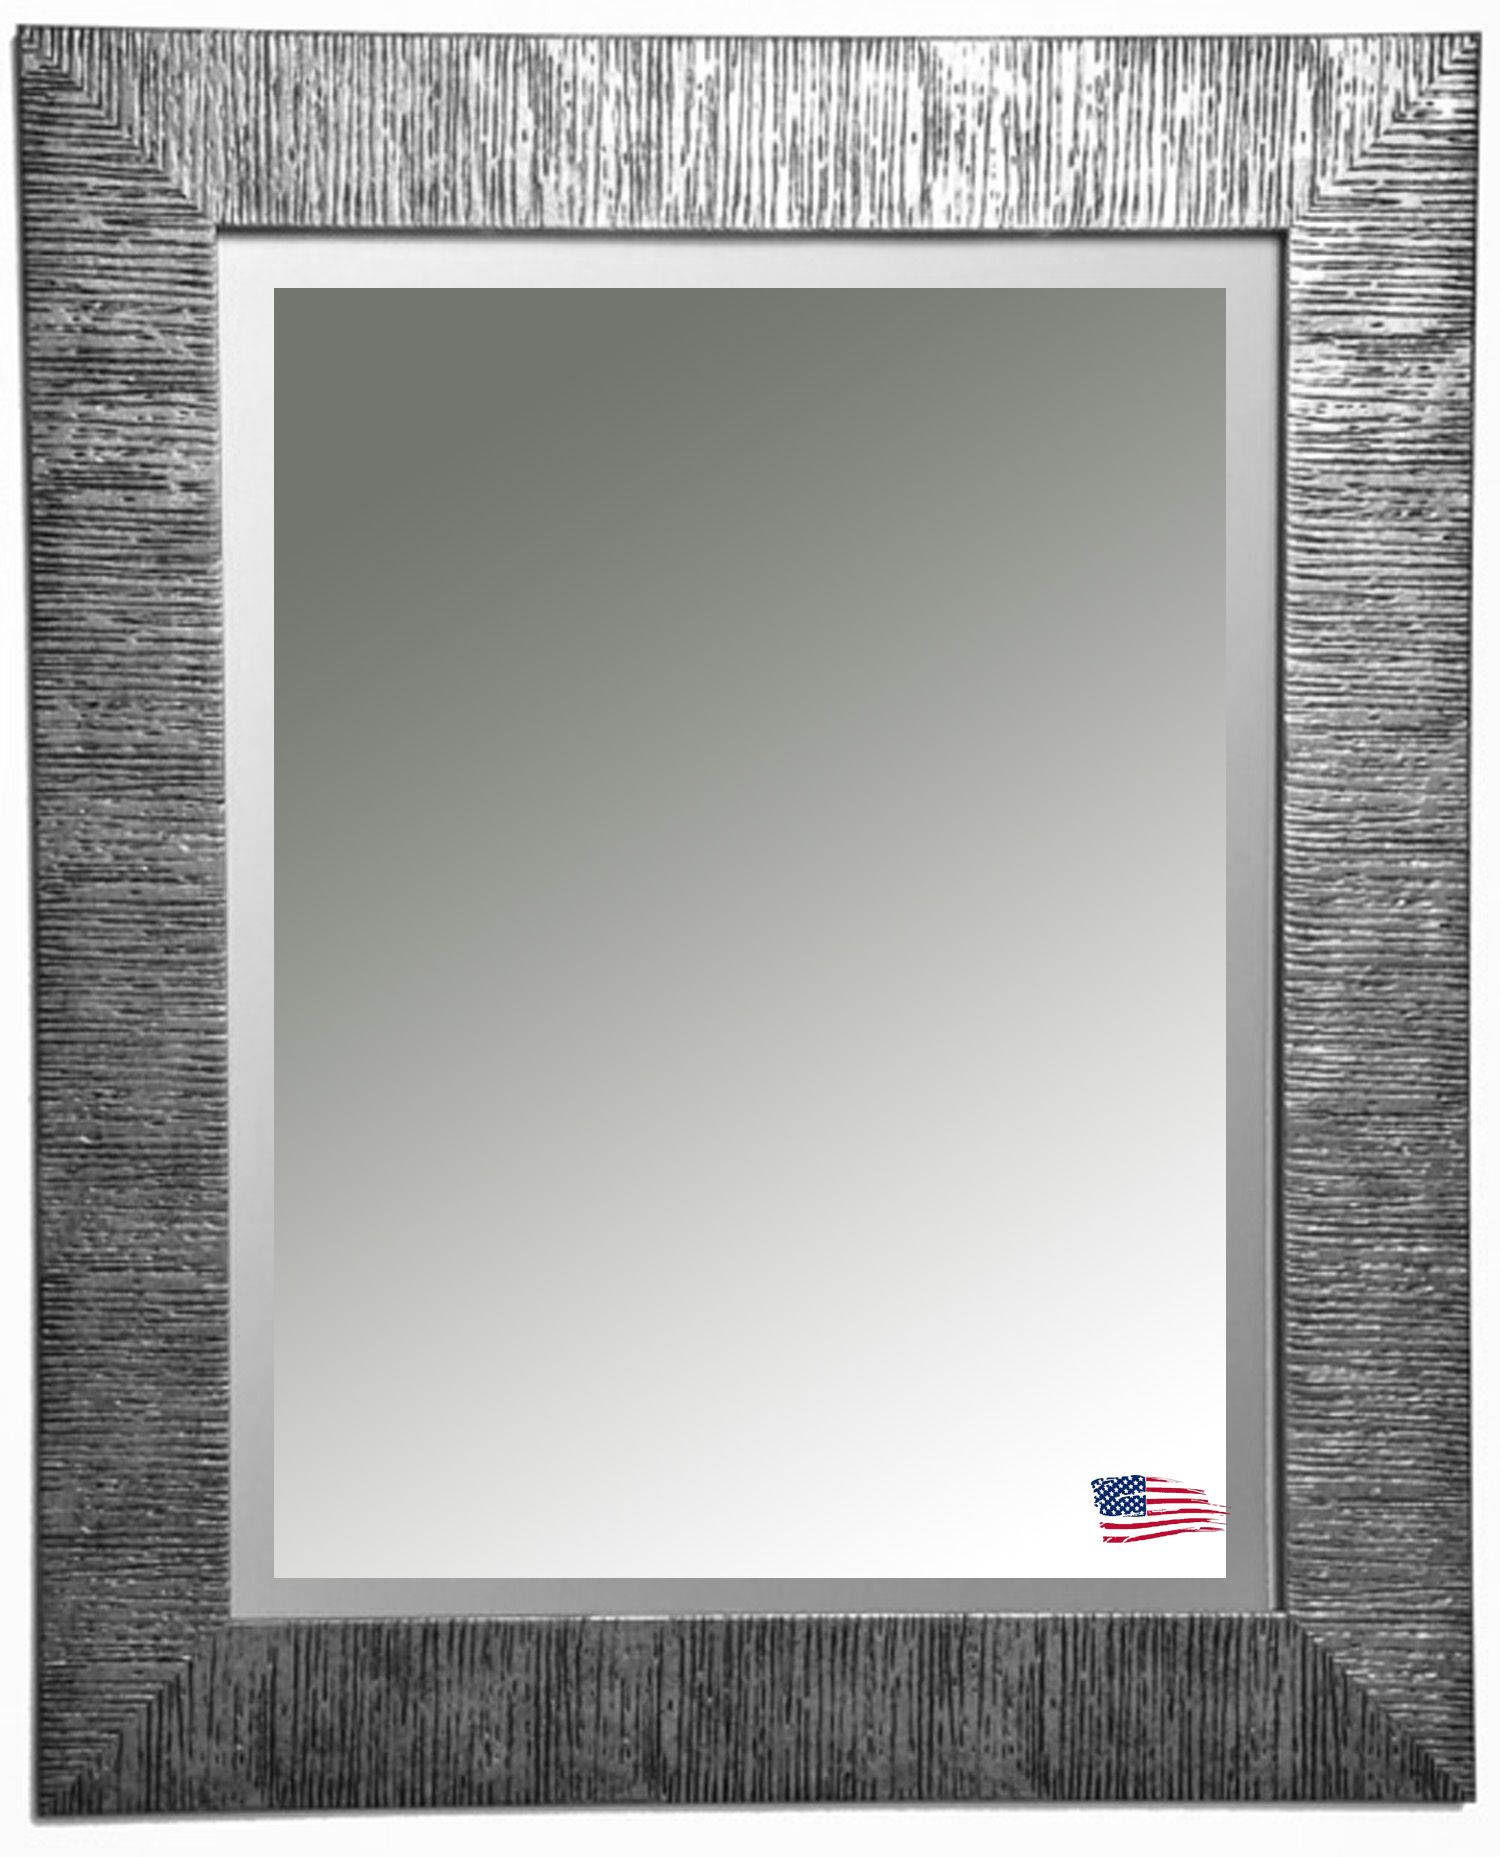 New style by Rayne Mirrors, Safari inspired silver